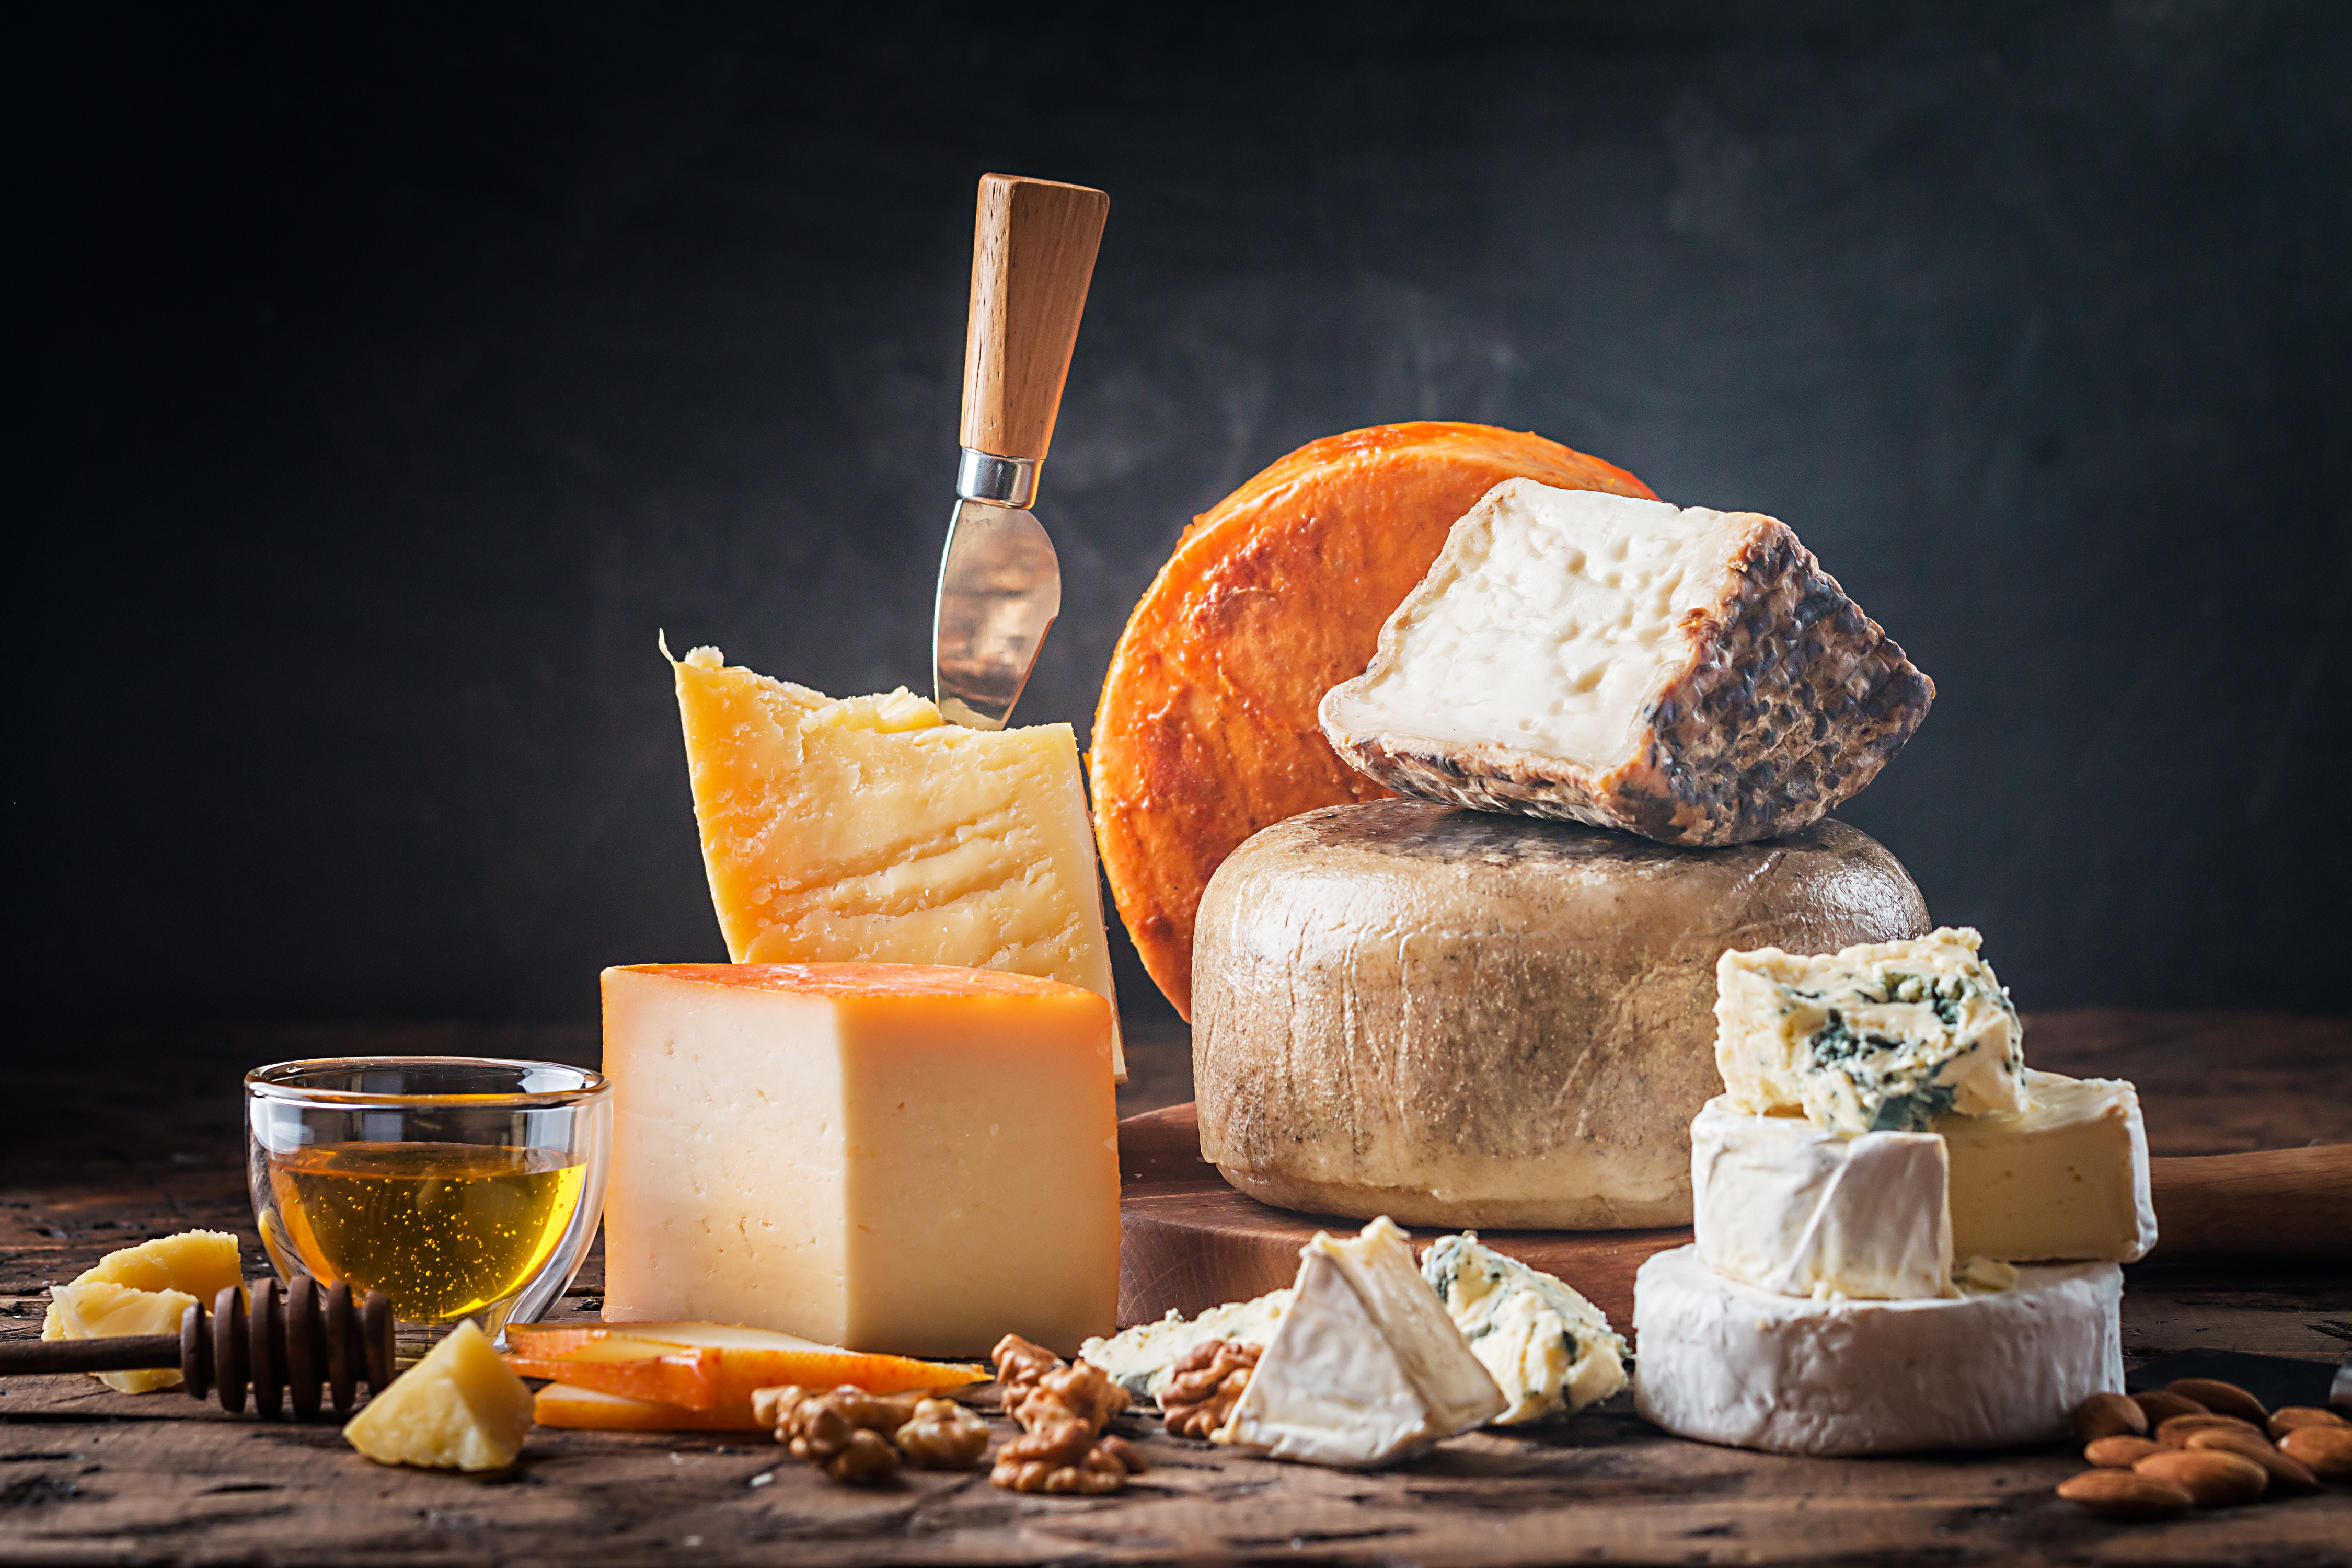 A New Zealand Cheesemaker Is Using a 2,000-Piece Puzzle as a Coupon for Free Cheese